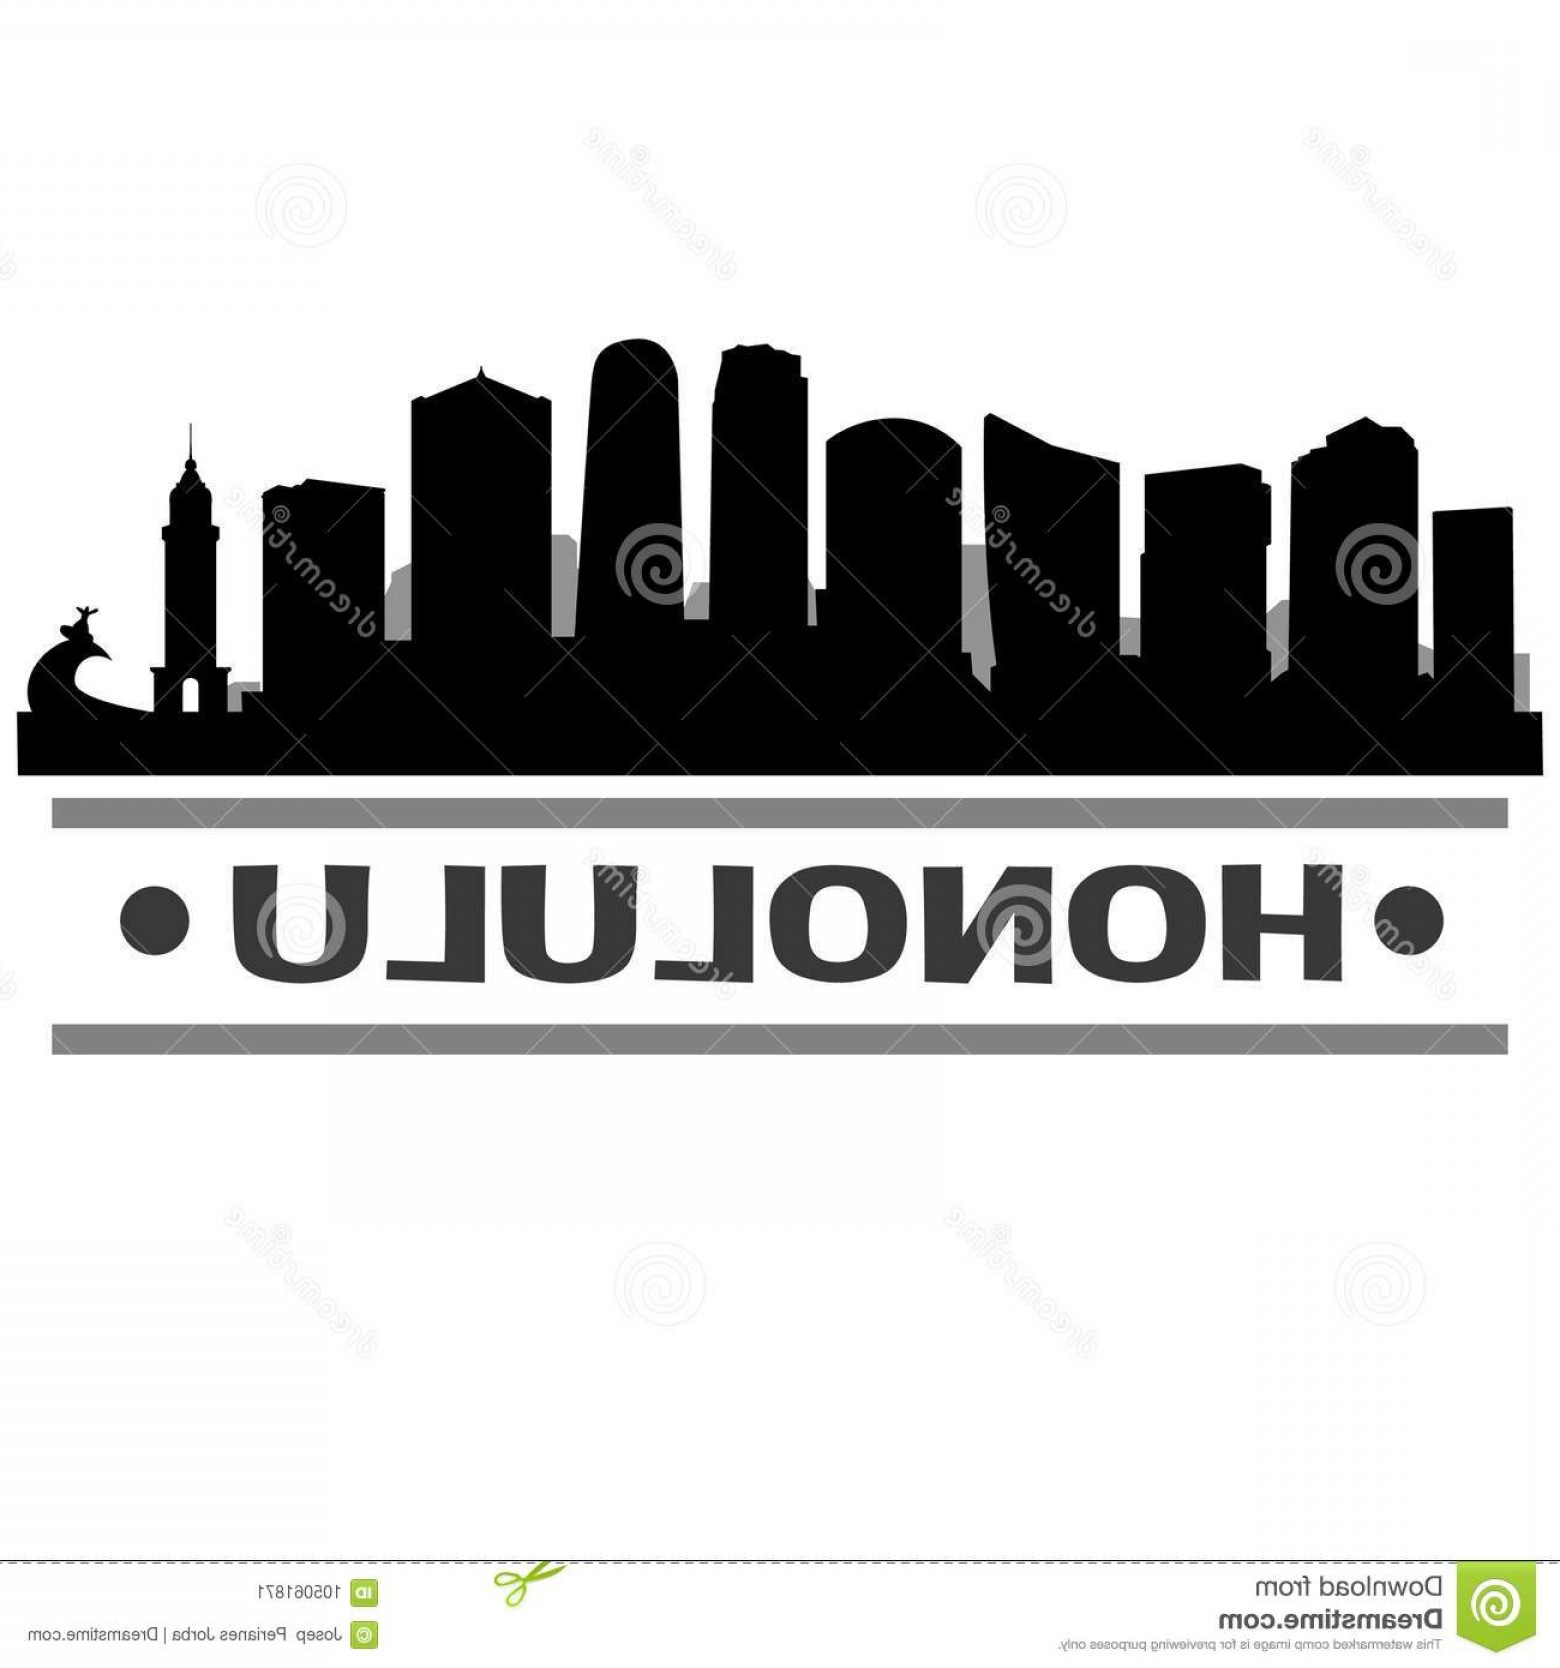 City Of Honolulu At Night Vector: Honolulu Hawaii United States America Usa Icon Vector Art Design Skyline Night Flat Shadow Emblematic Elements City Image